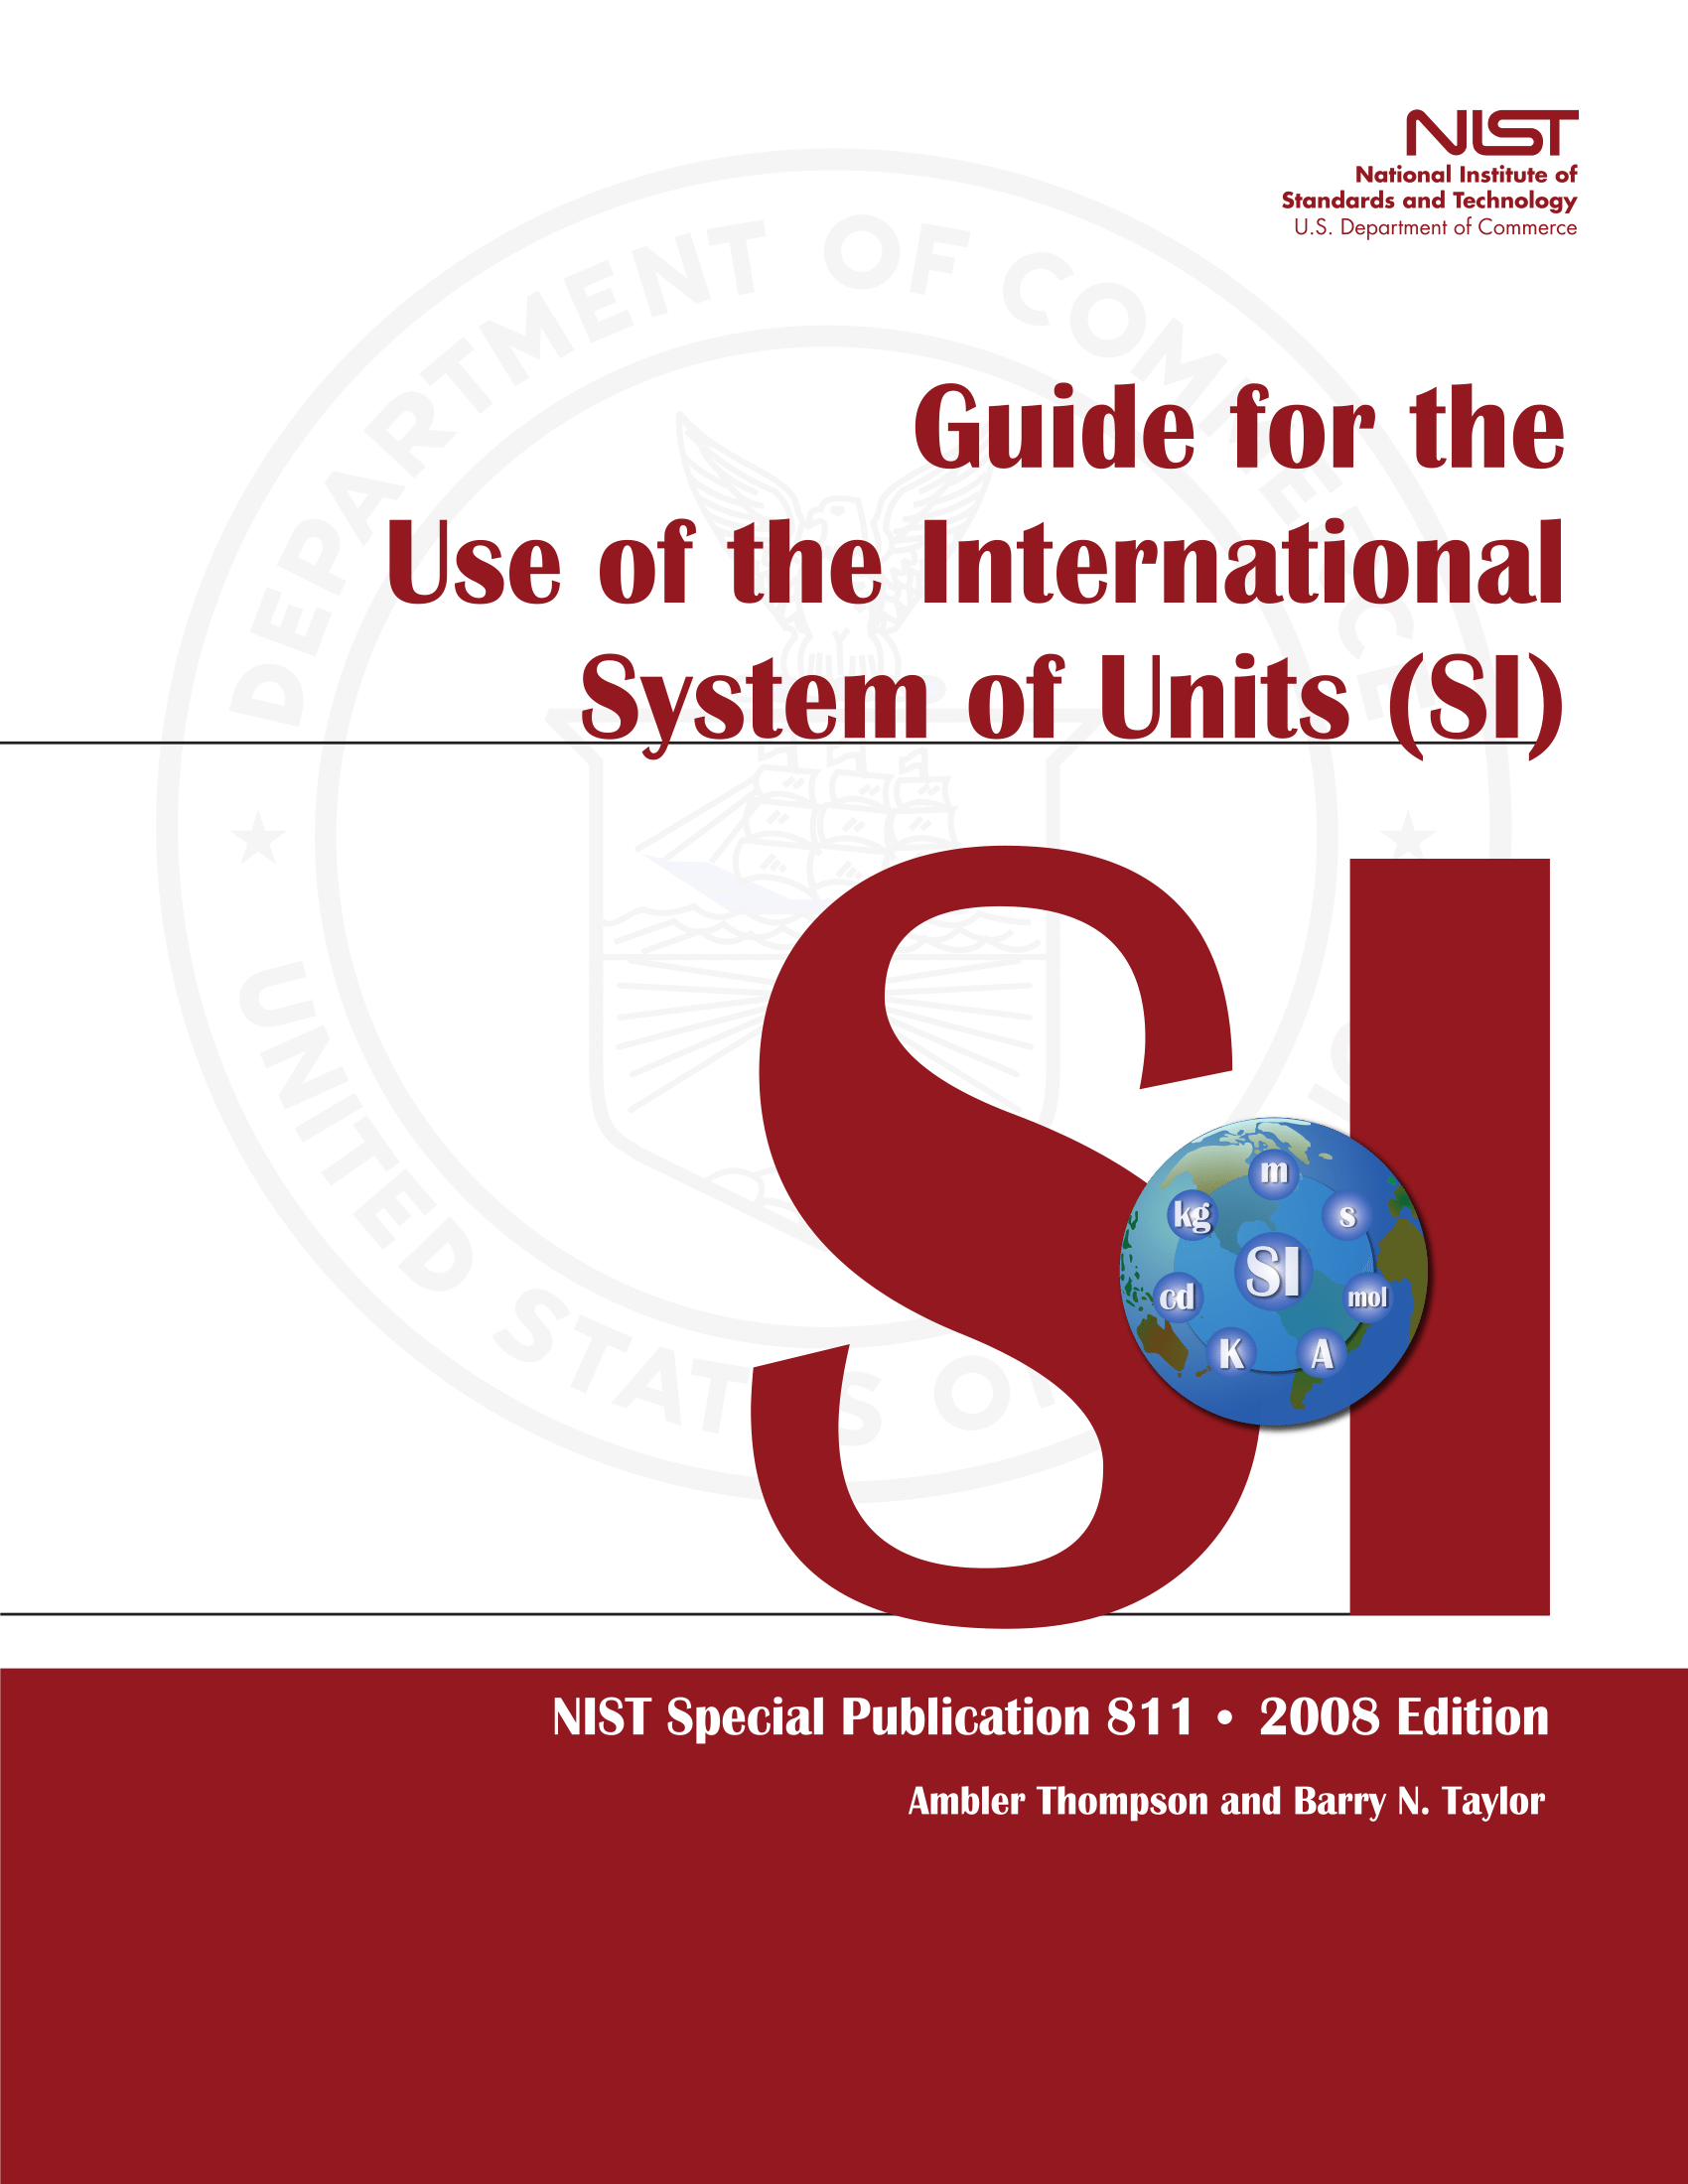 Guide_for_the_Use_of_the_International_System_of_Units-01